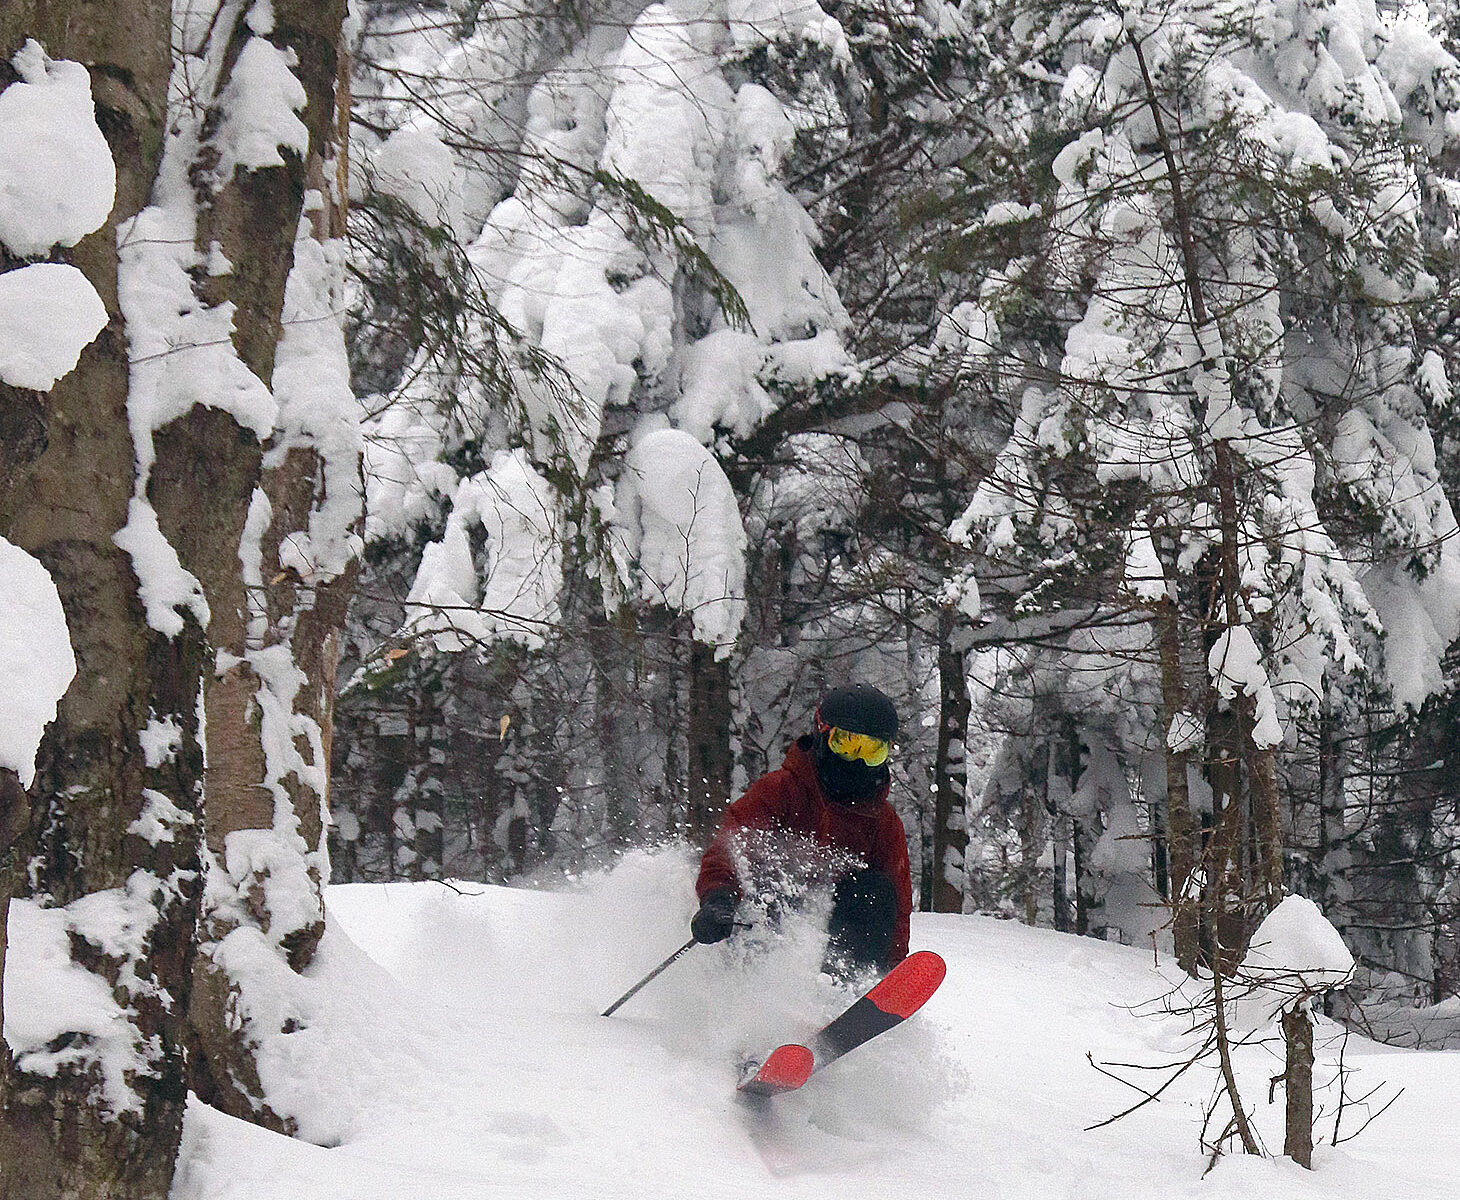 An image of Dylan skiing powder from Winter Storm Peggy in the Villager Trees at Bolton Valley Resort in Vermont